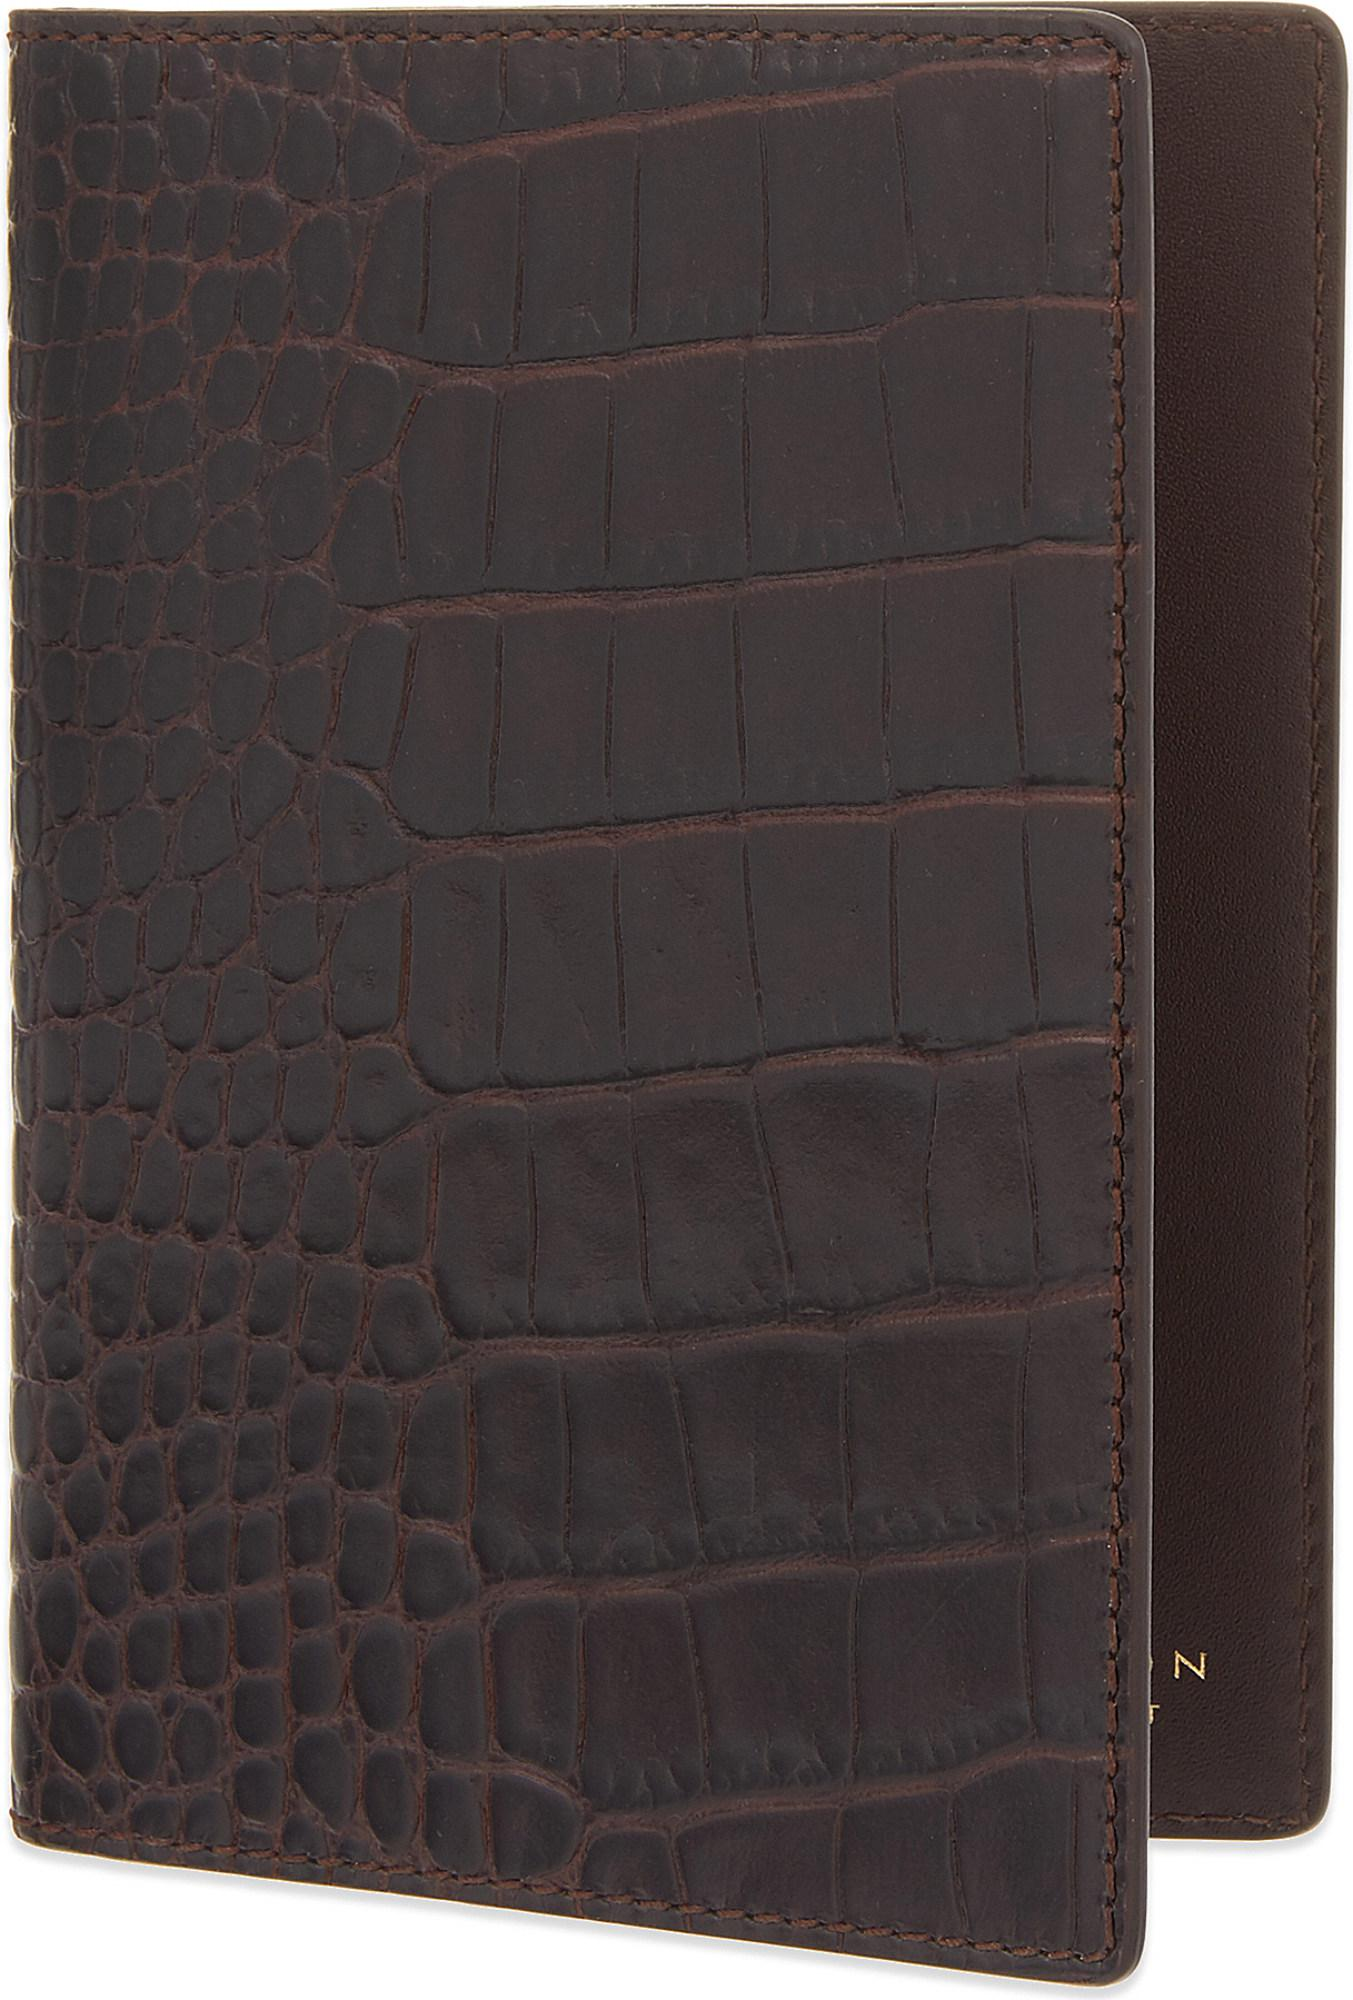 9cd4ba780543 Smythson Mara Leather Passport Cover in Brown for Men - Lyst